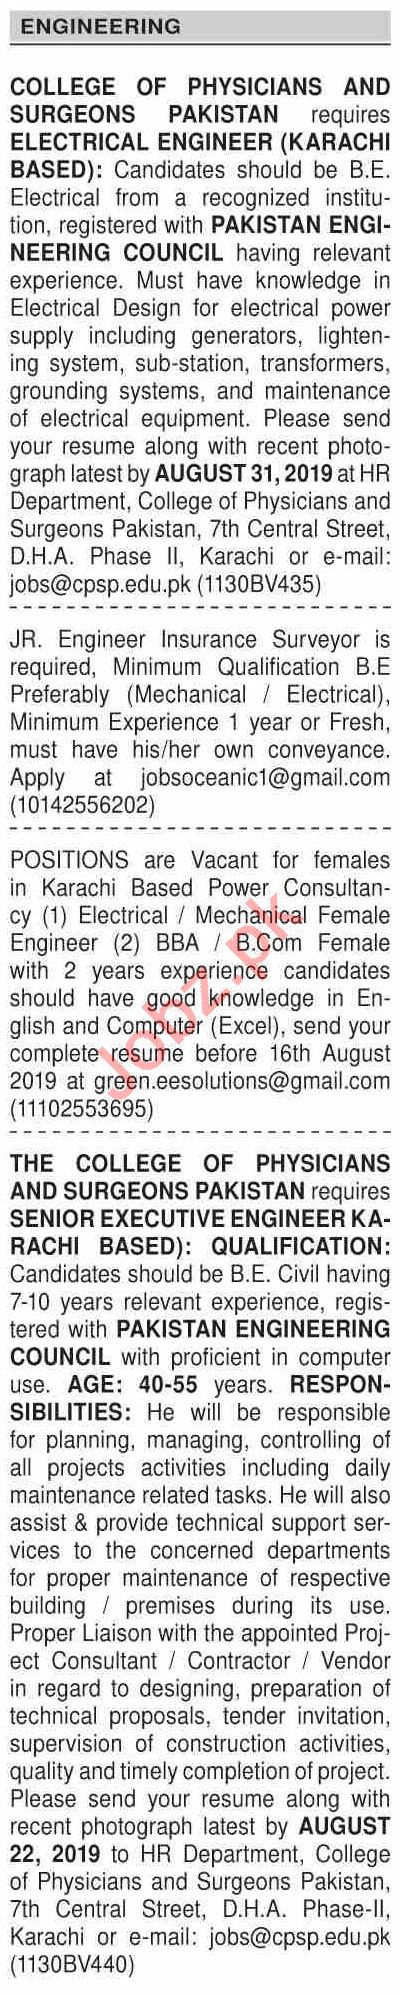 Dawn Sunday Classified Ads 11th Aug 2019 for Engineering